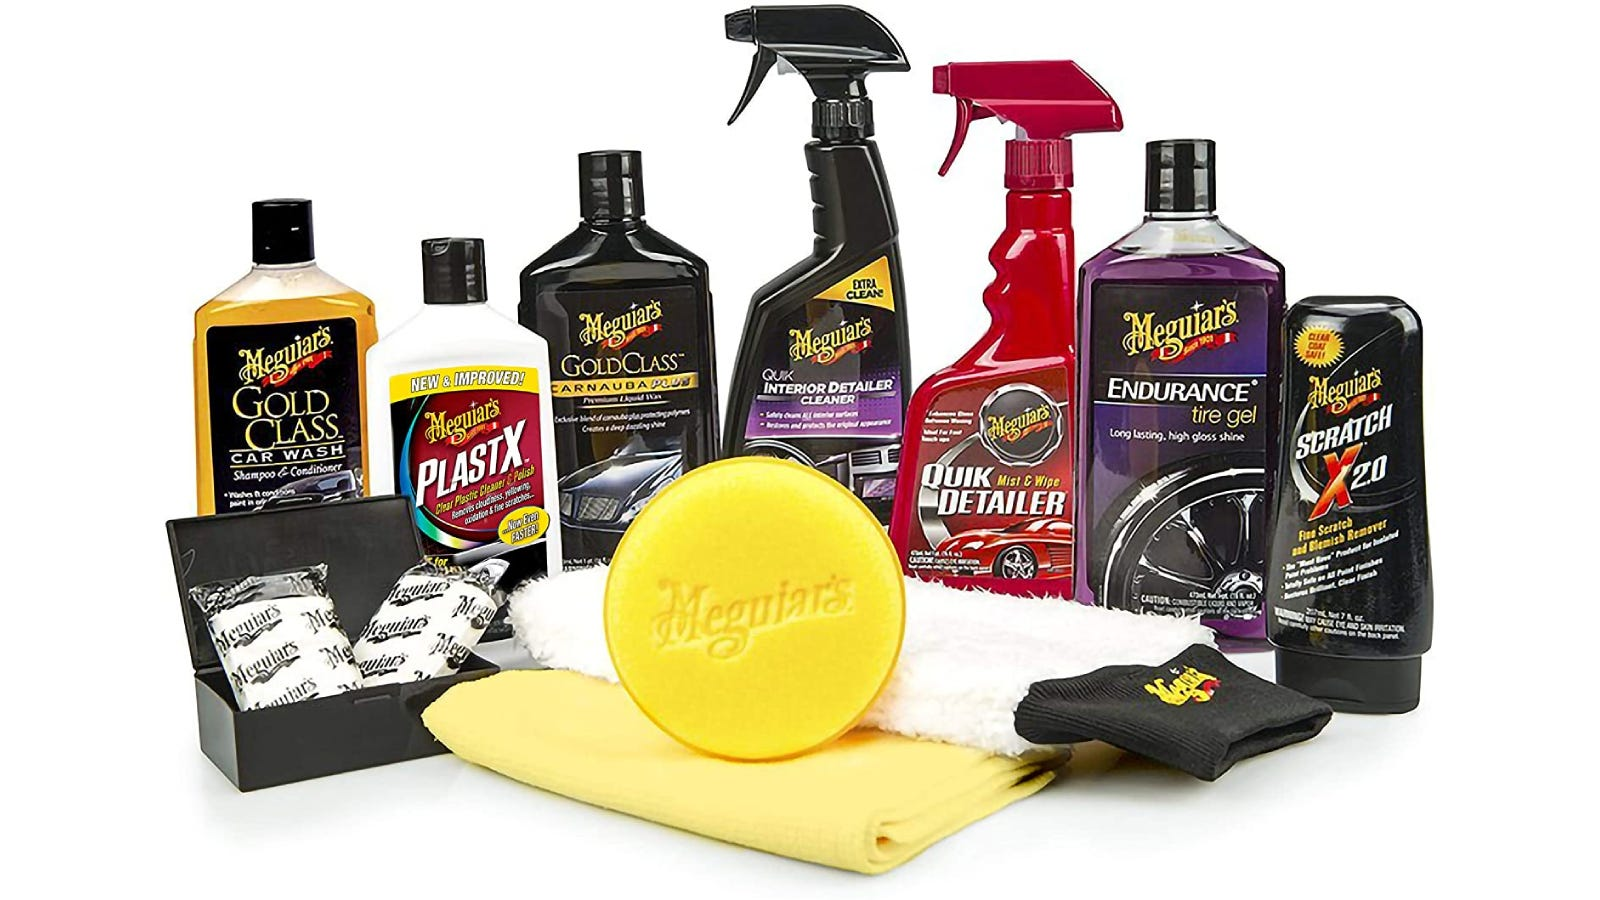 Seven bottles of car cleaning products lined up with towels, a clay bar, and other products in front of them.